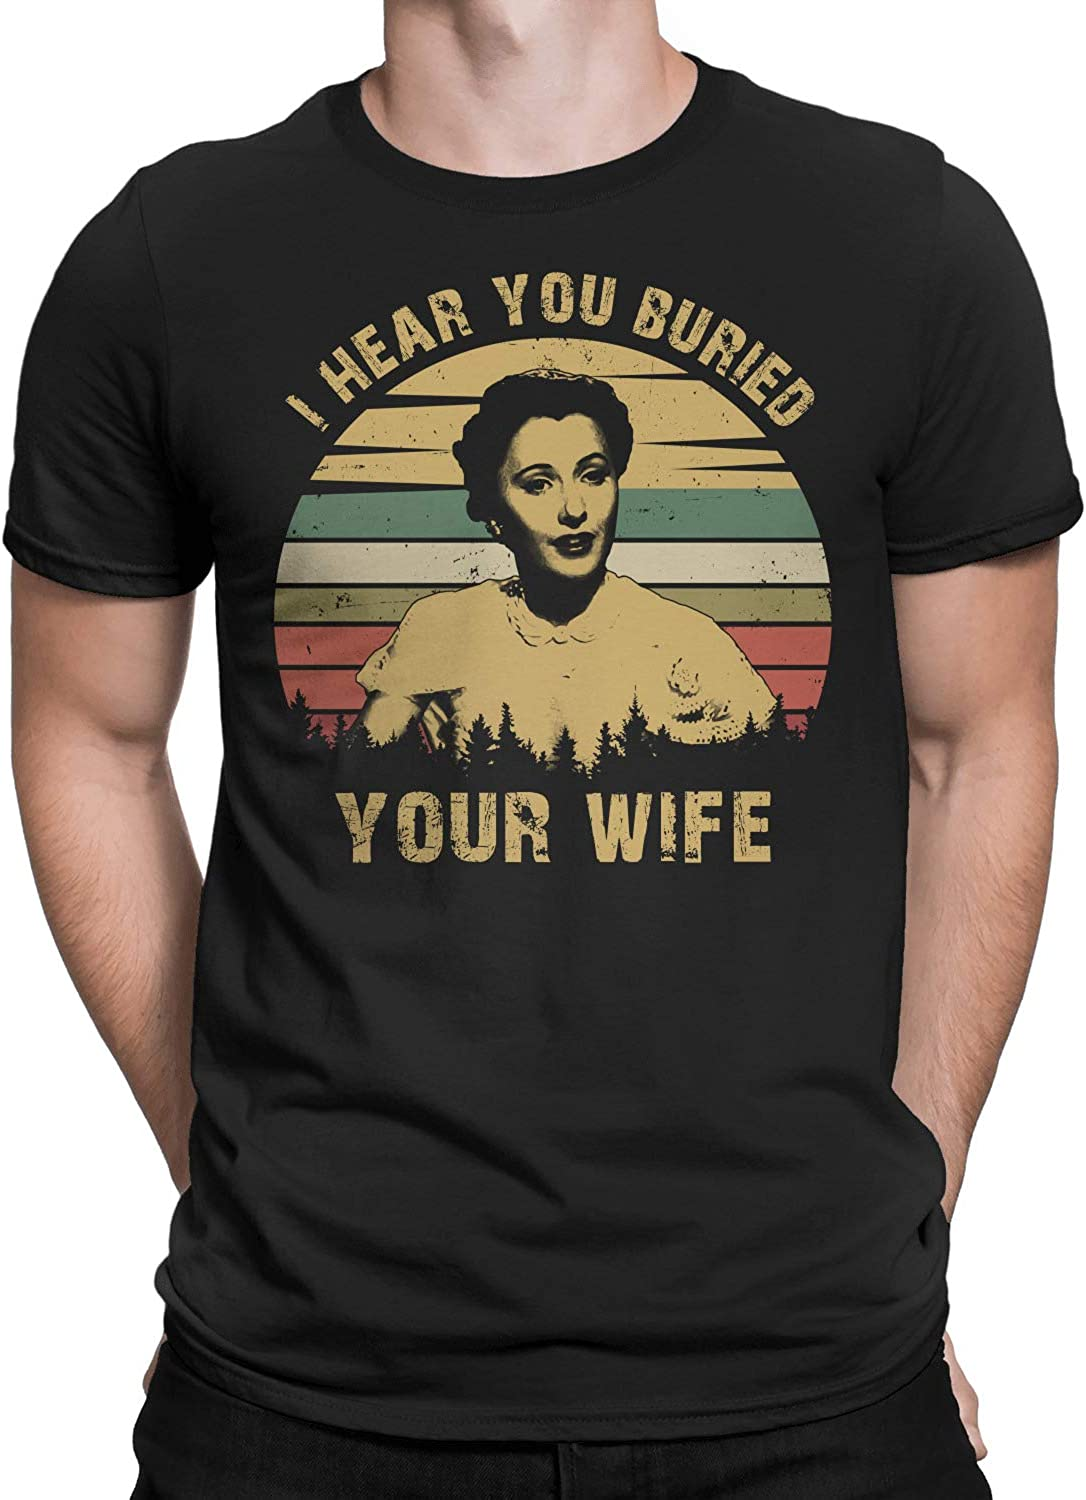 I Hear You Buried Your Wife Vintage T-Shirt